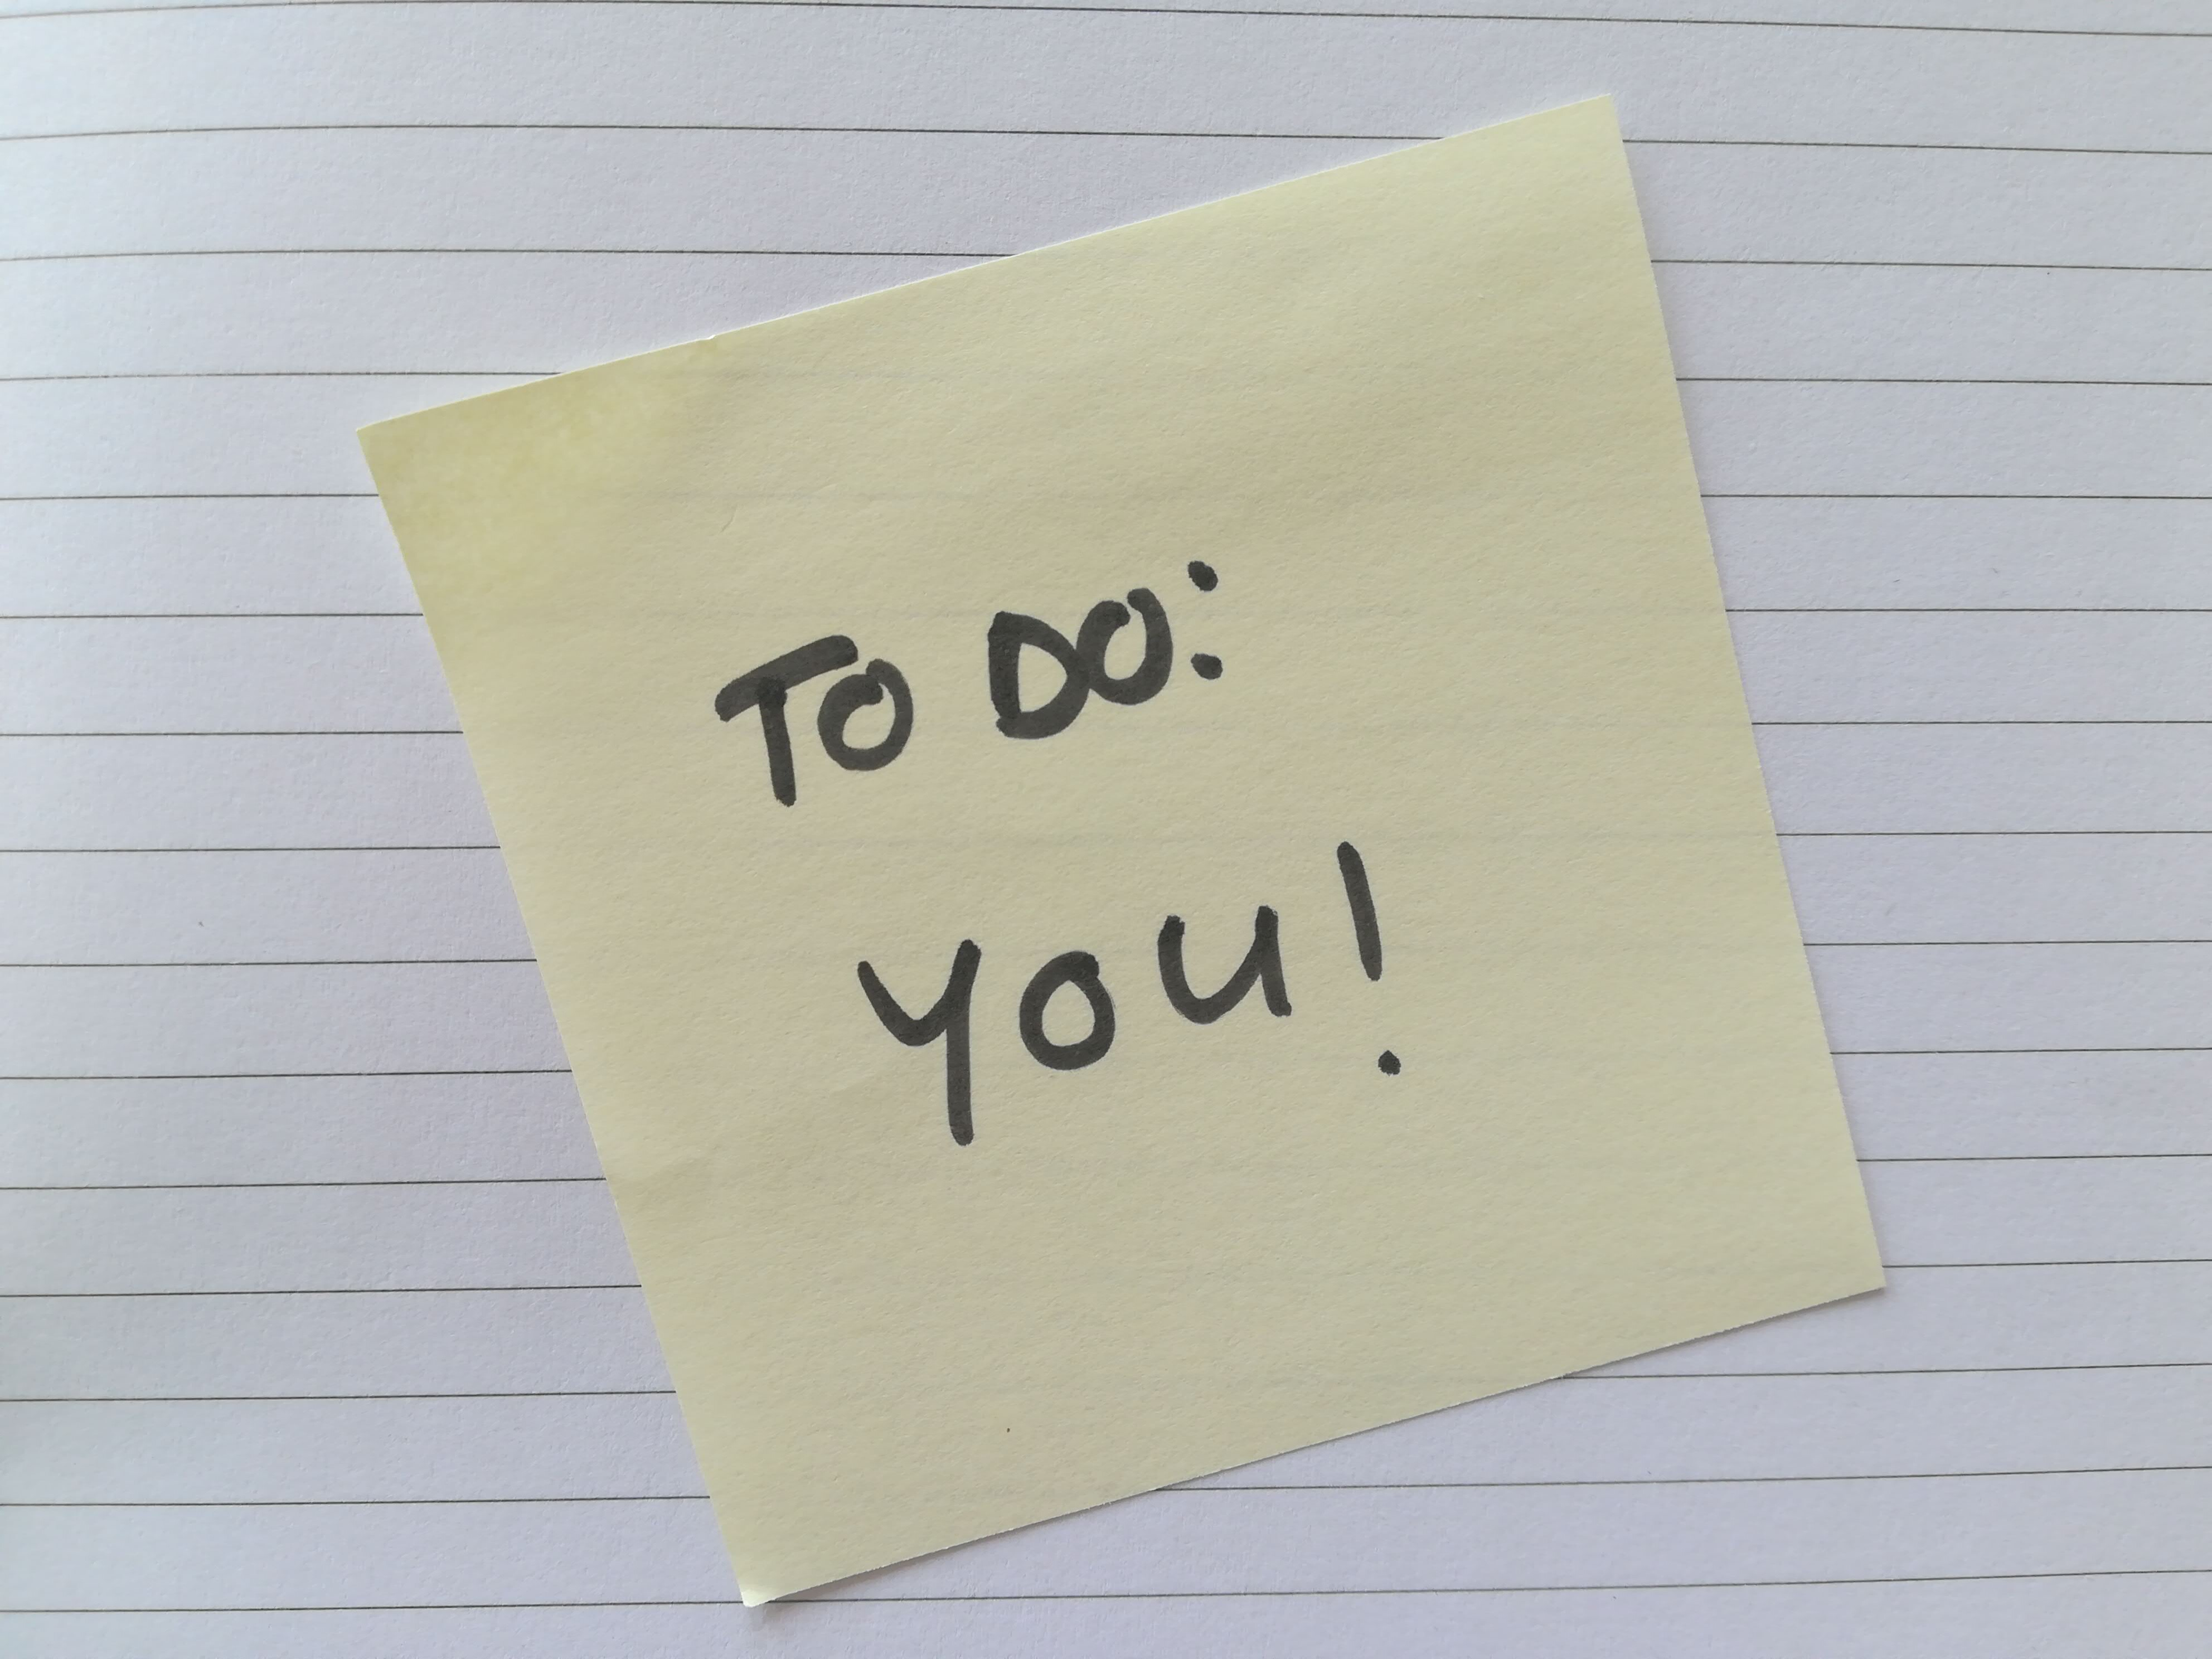 Post it note with text written on that says To do: you!